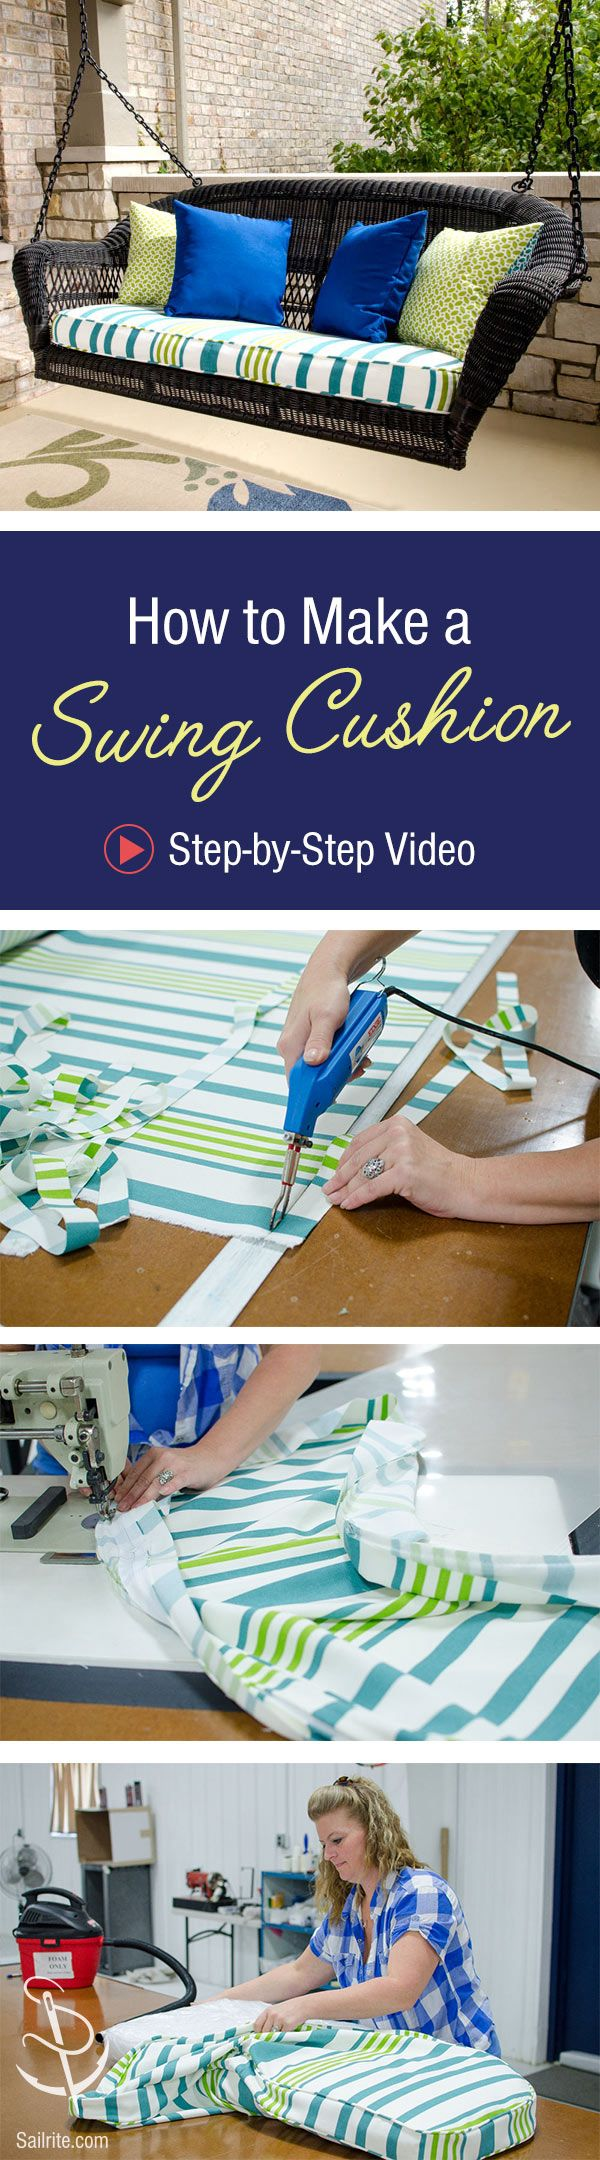 Learn how to sew a box cushion perfect for your porch swing in this step-by-step video tutorial!